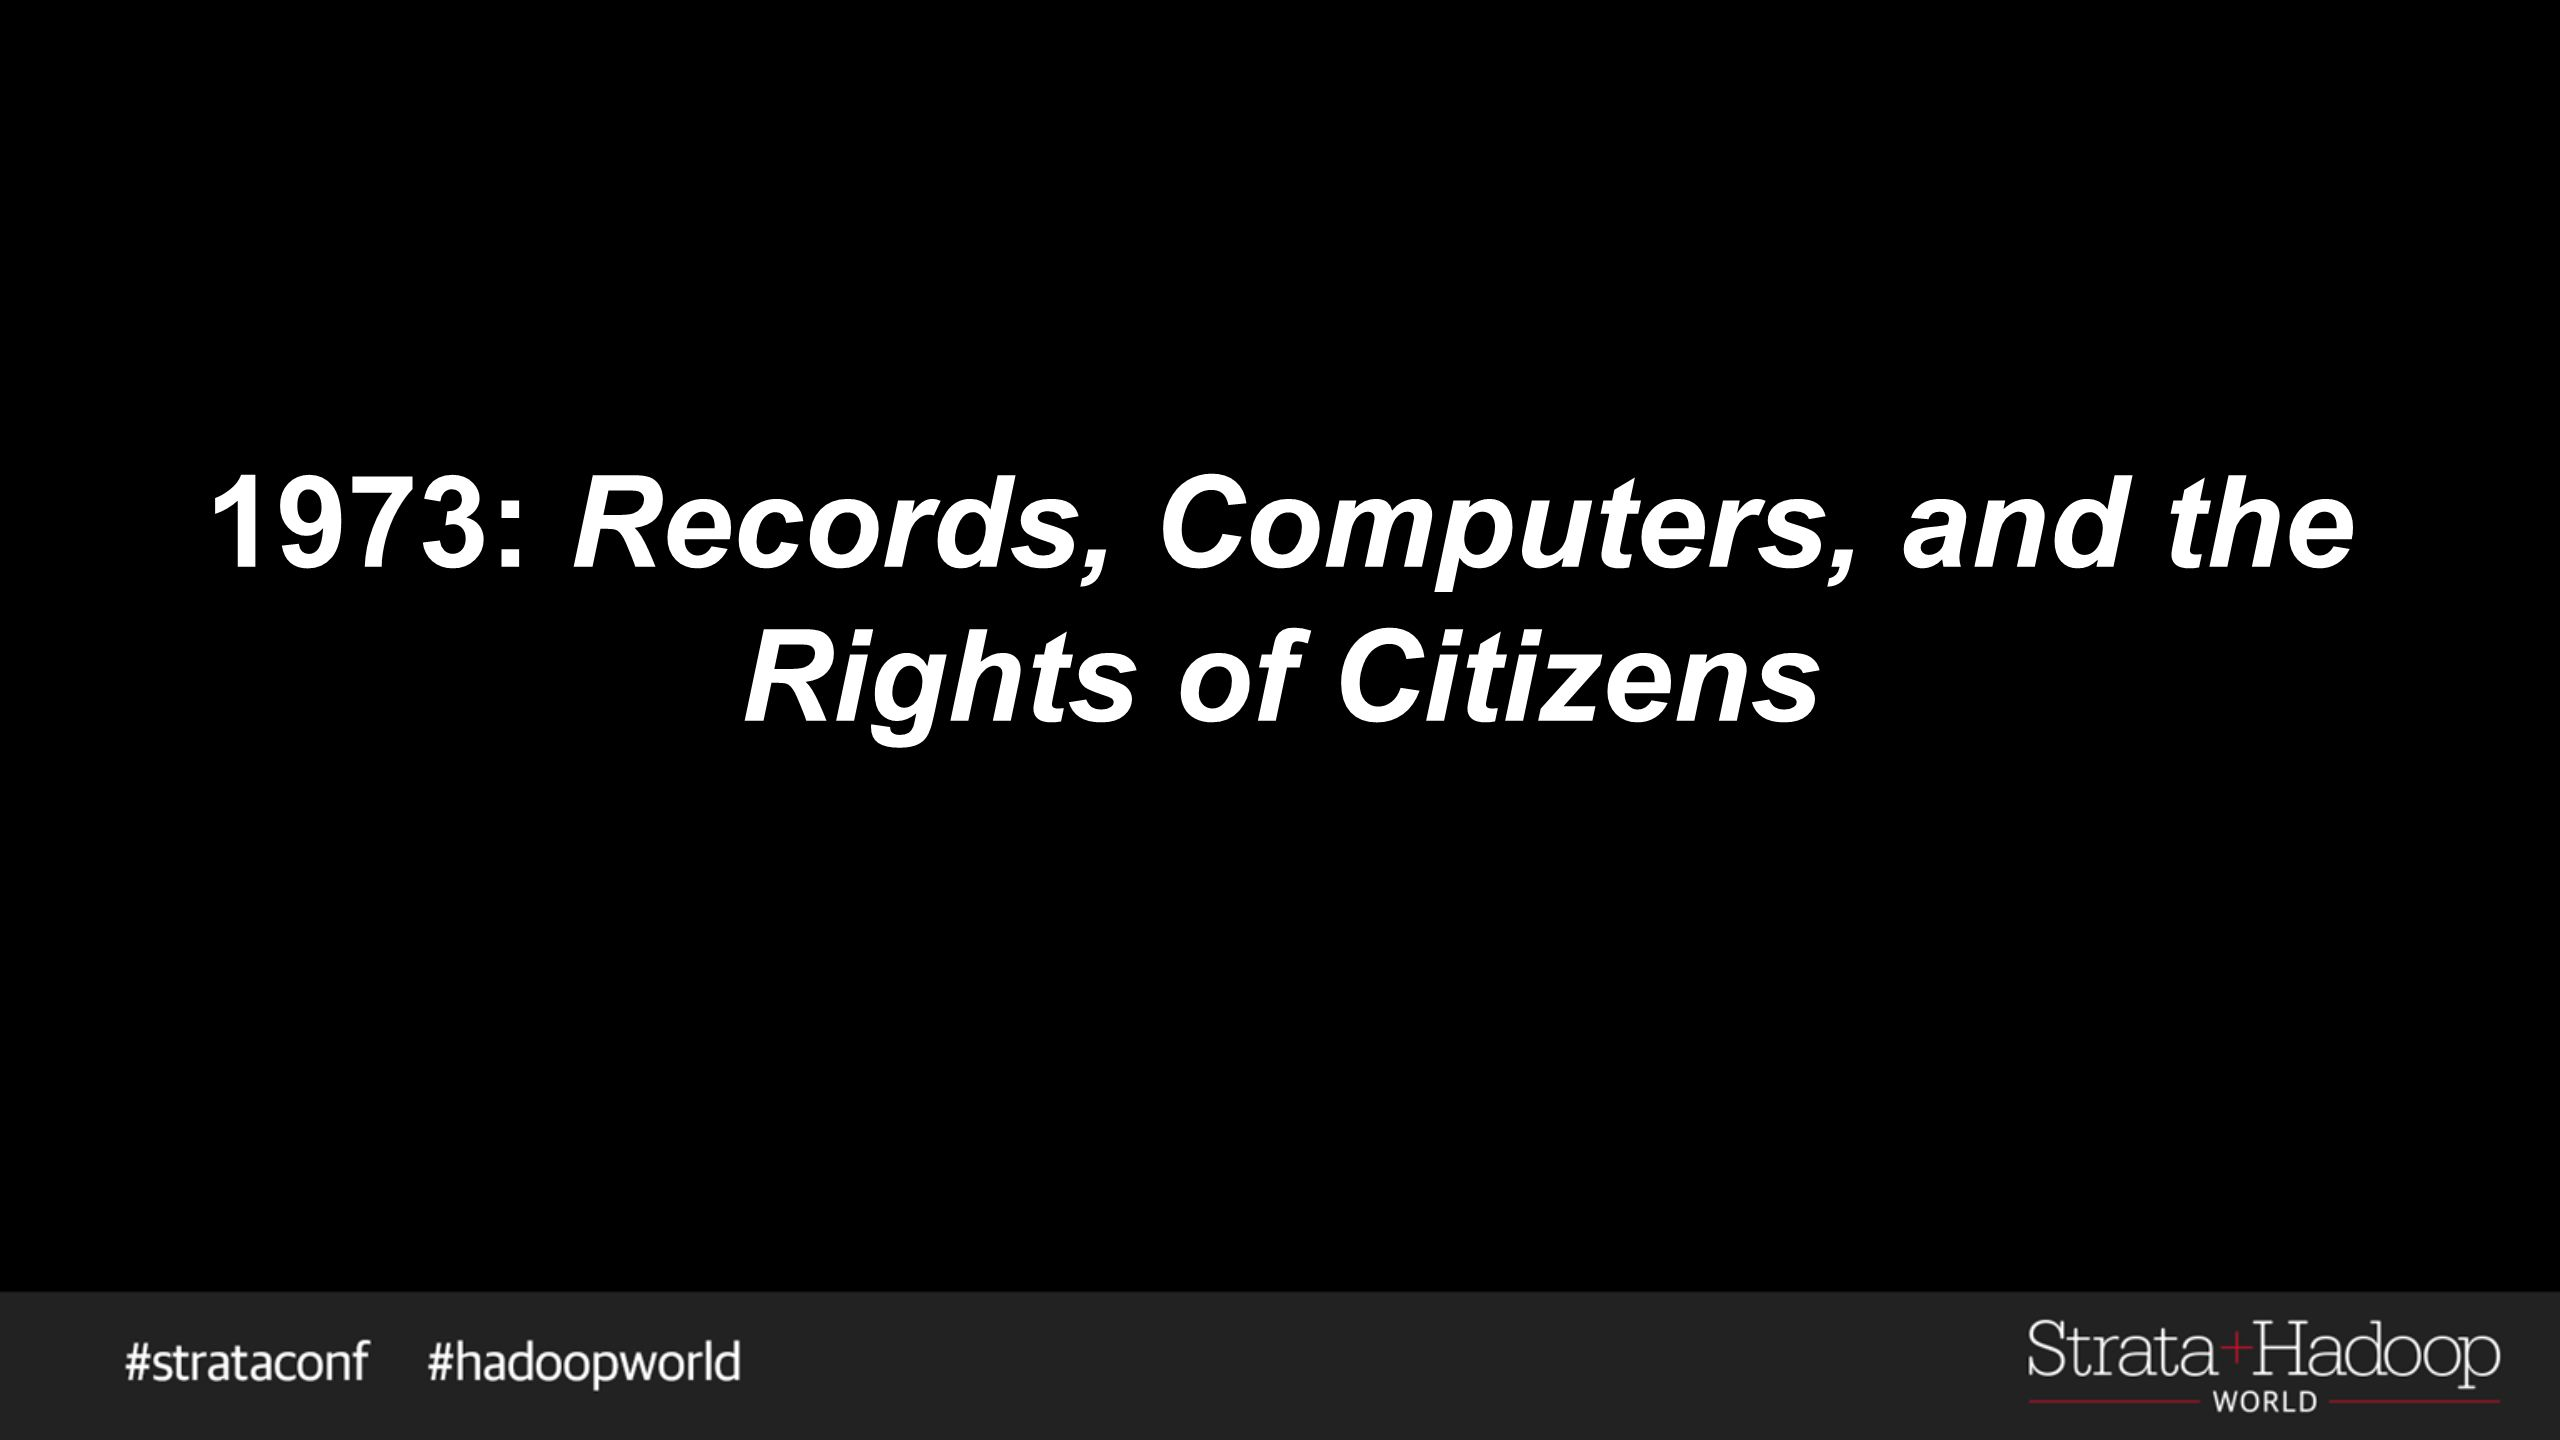 1973: Records, Computers, and the Rights of Citizens